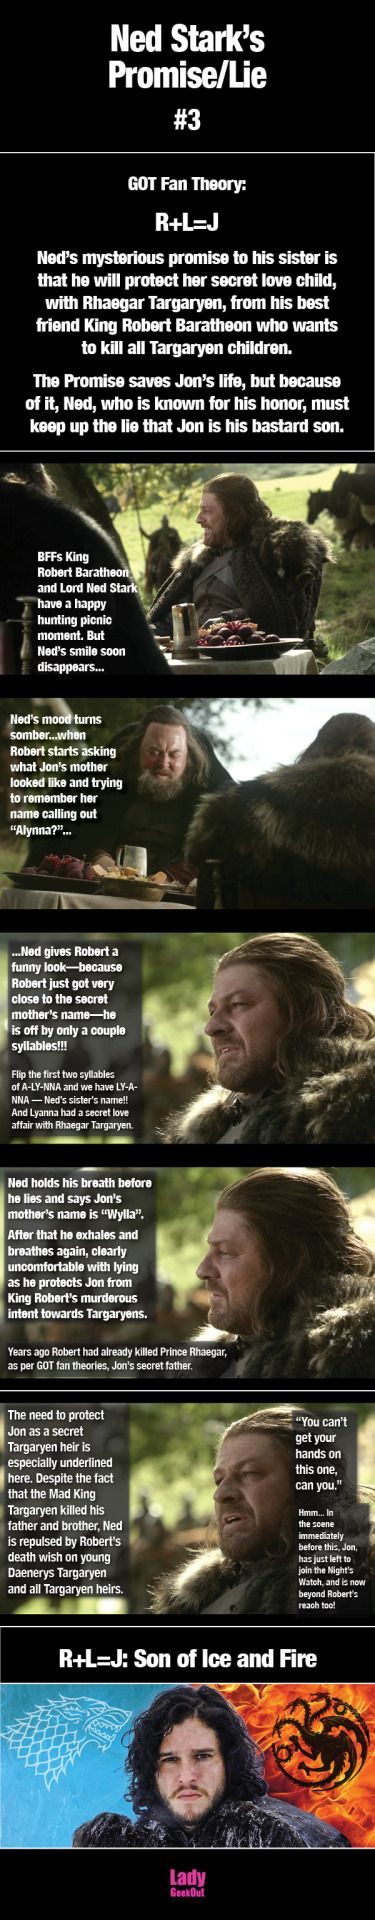 Jon is the son of ice and fire! The revelation of Ned's Promise/Lie is based on GOT Fan Theory: R+L=JNed's mysterious promise to his sister is that he will protect her secret love child, with Rhaegar Targaryen, from his best friend King Robert Baratheon who wants to kill all Targaryen children.The Promise saves Jon's life, but because of it, Ned, who is known for his honor, must keep up the lie that Jon is his bastard son. #R+L=J #GOT #ASOIAF #jonsnow #nedstark #lyannastark #sonoficeandfire